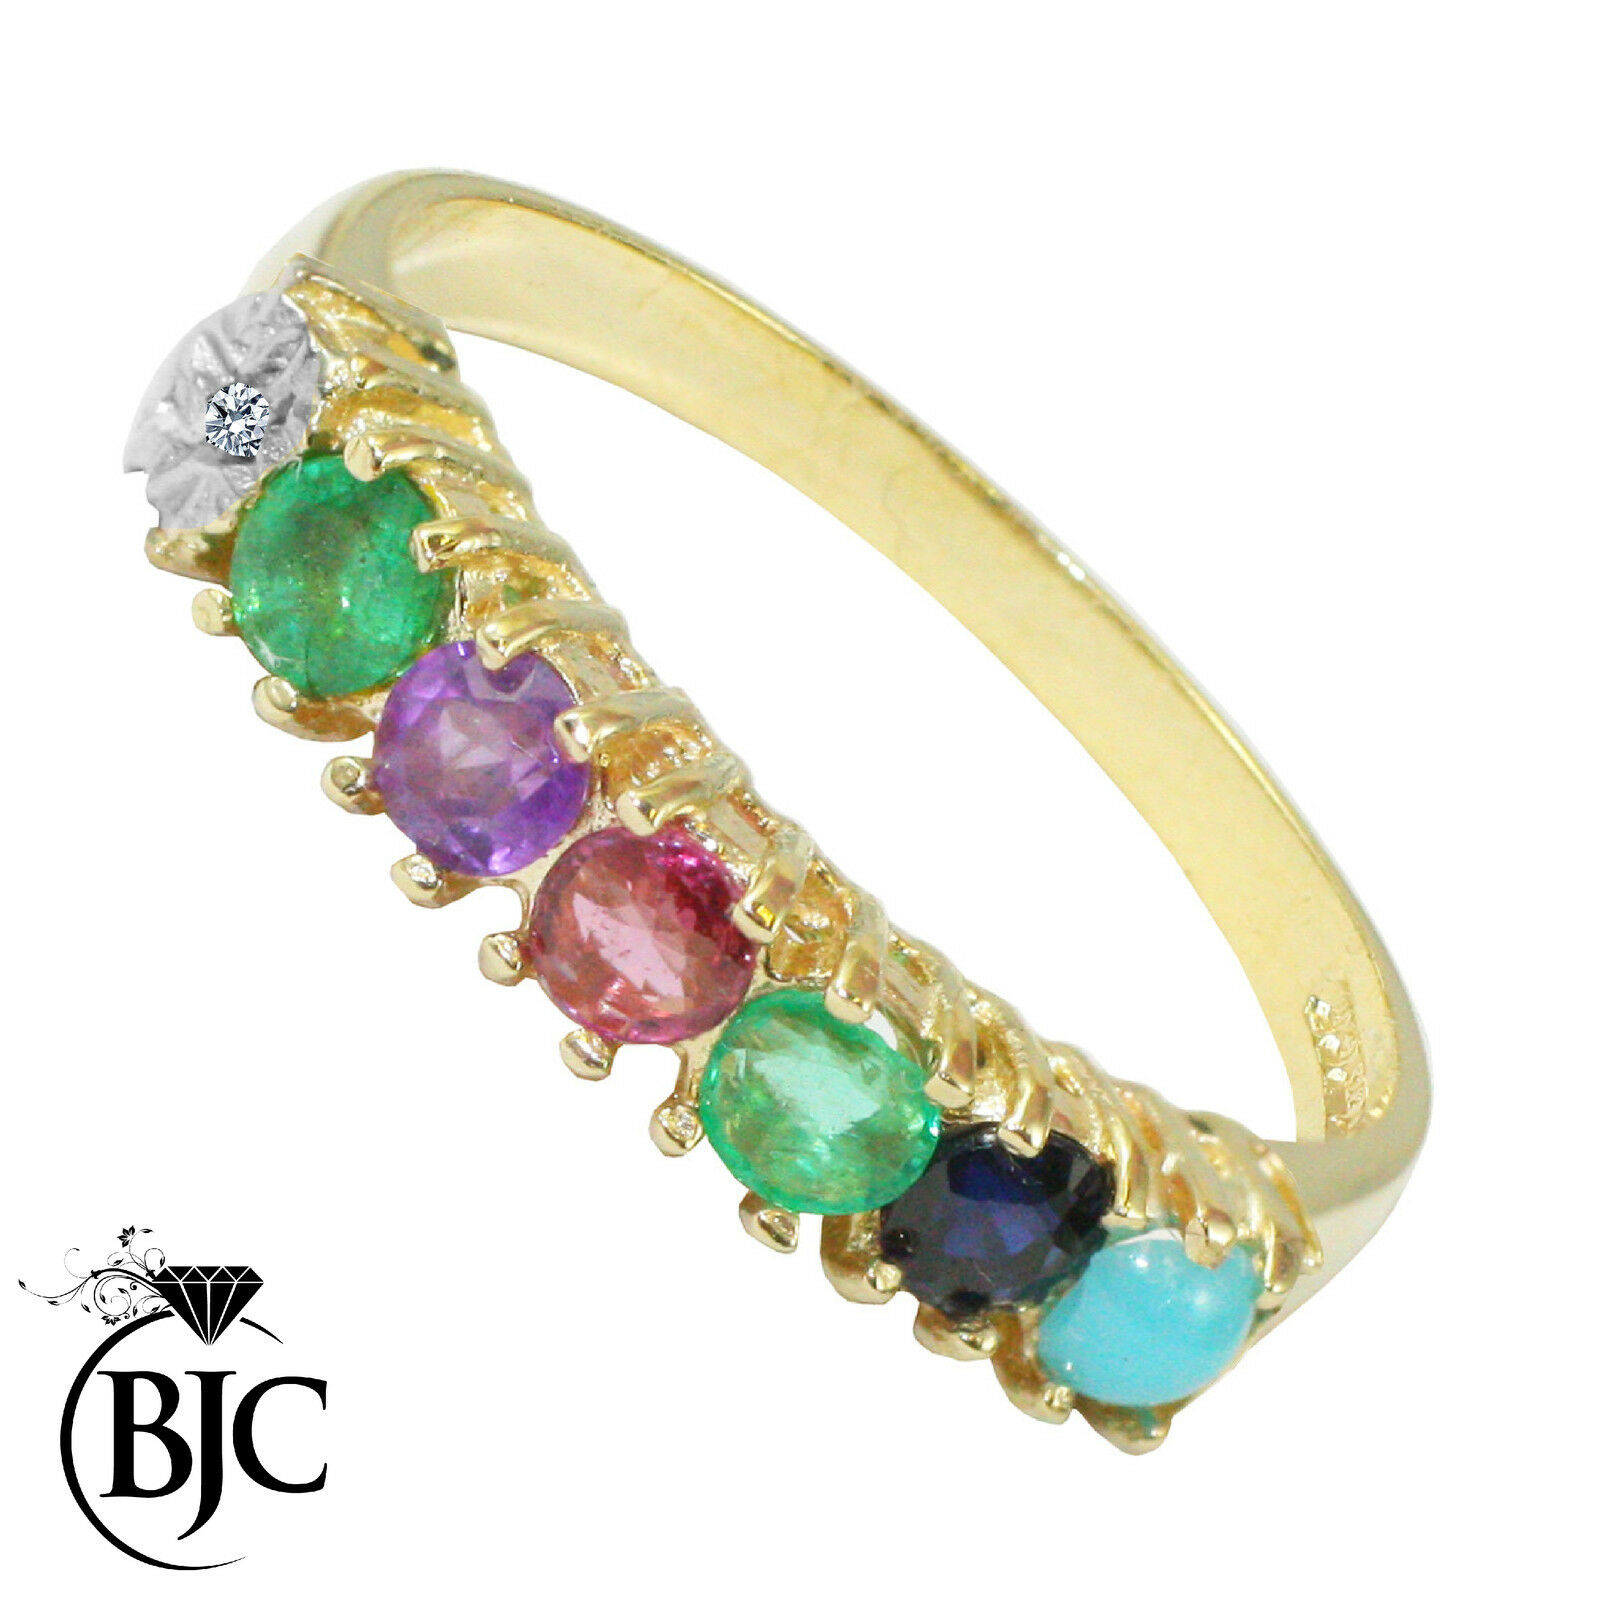 BJC 9 ct gold yellow DEAREST Anillo Diamante Emerald Amatista rubí Zafiro